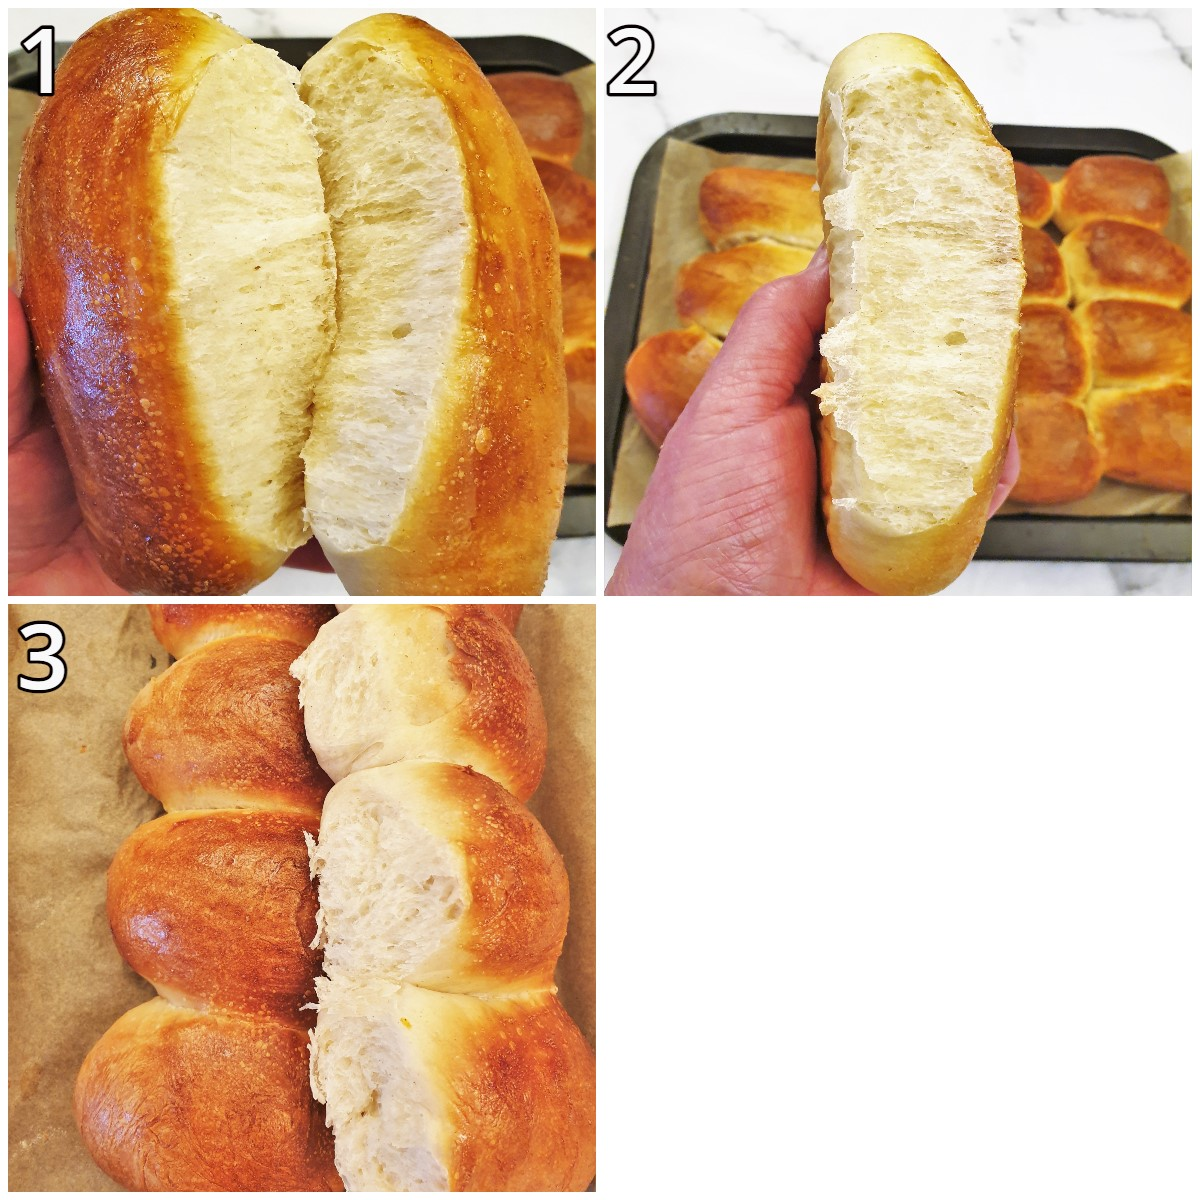 Collage of 3 images showing the inner texture of the rolls.